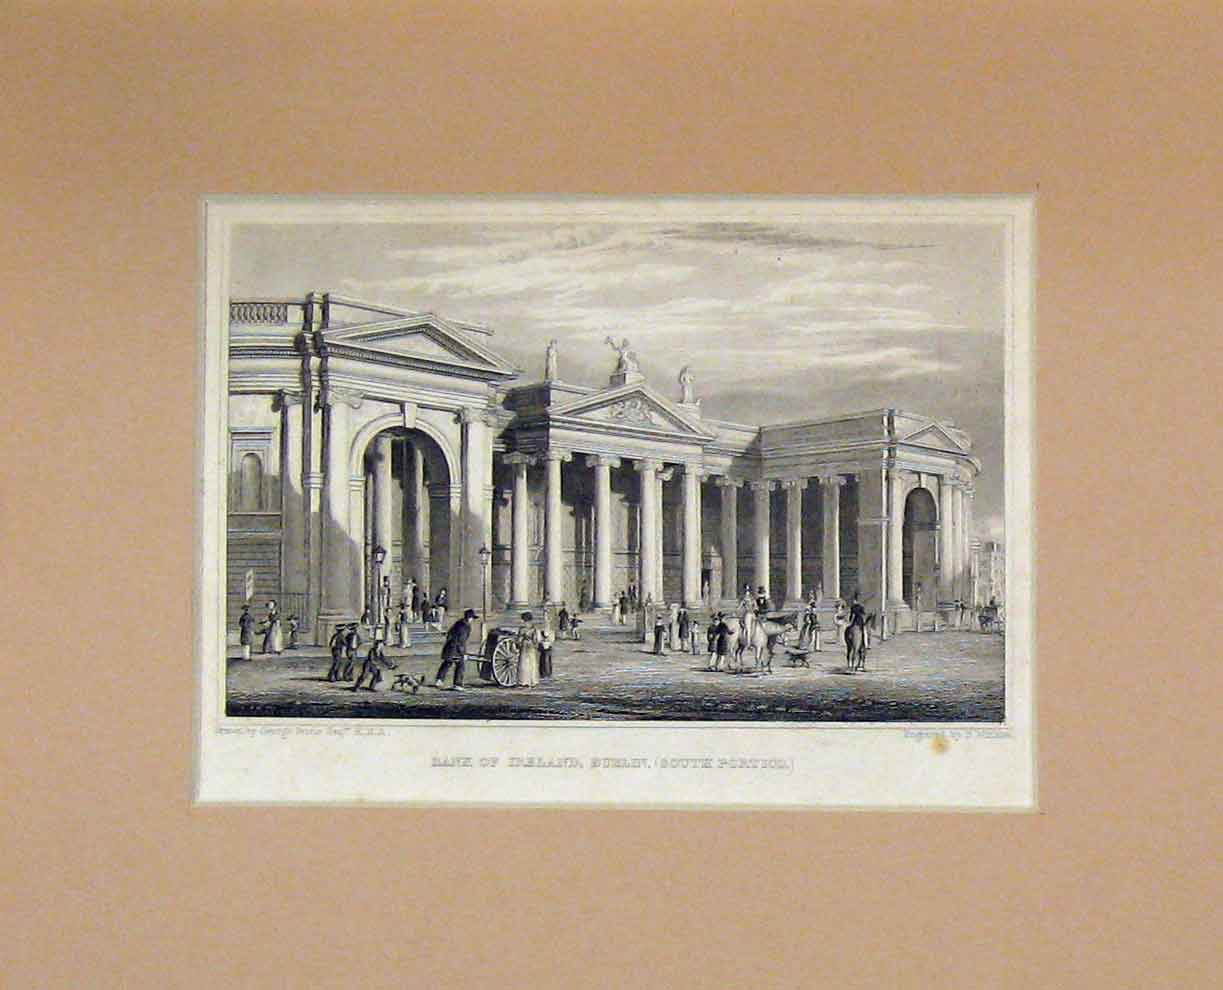 Print View Bank Ireland Dublin South Portico 1860 Winkles 306B282 Old Original